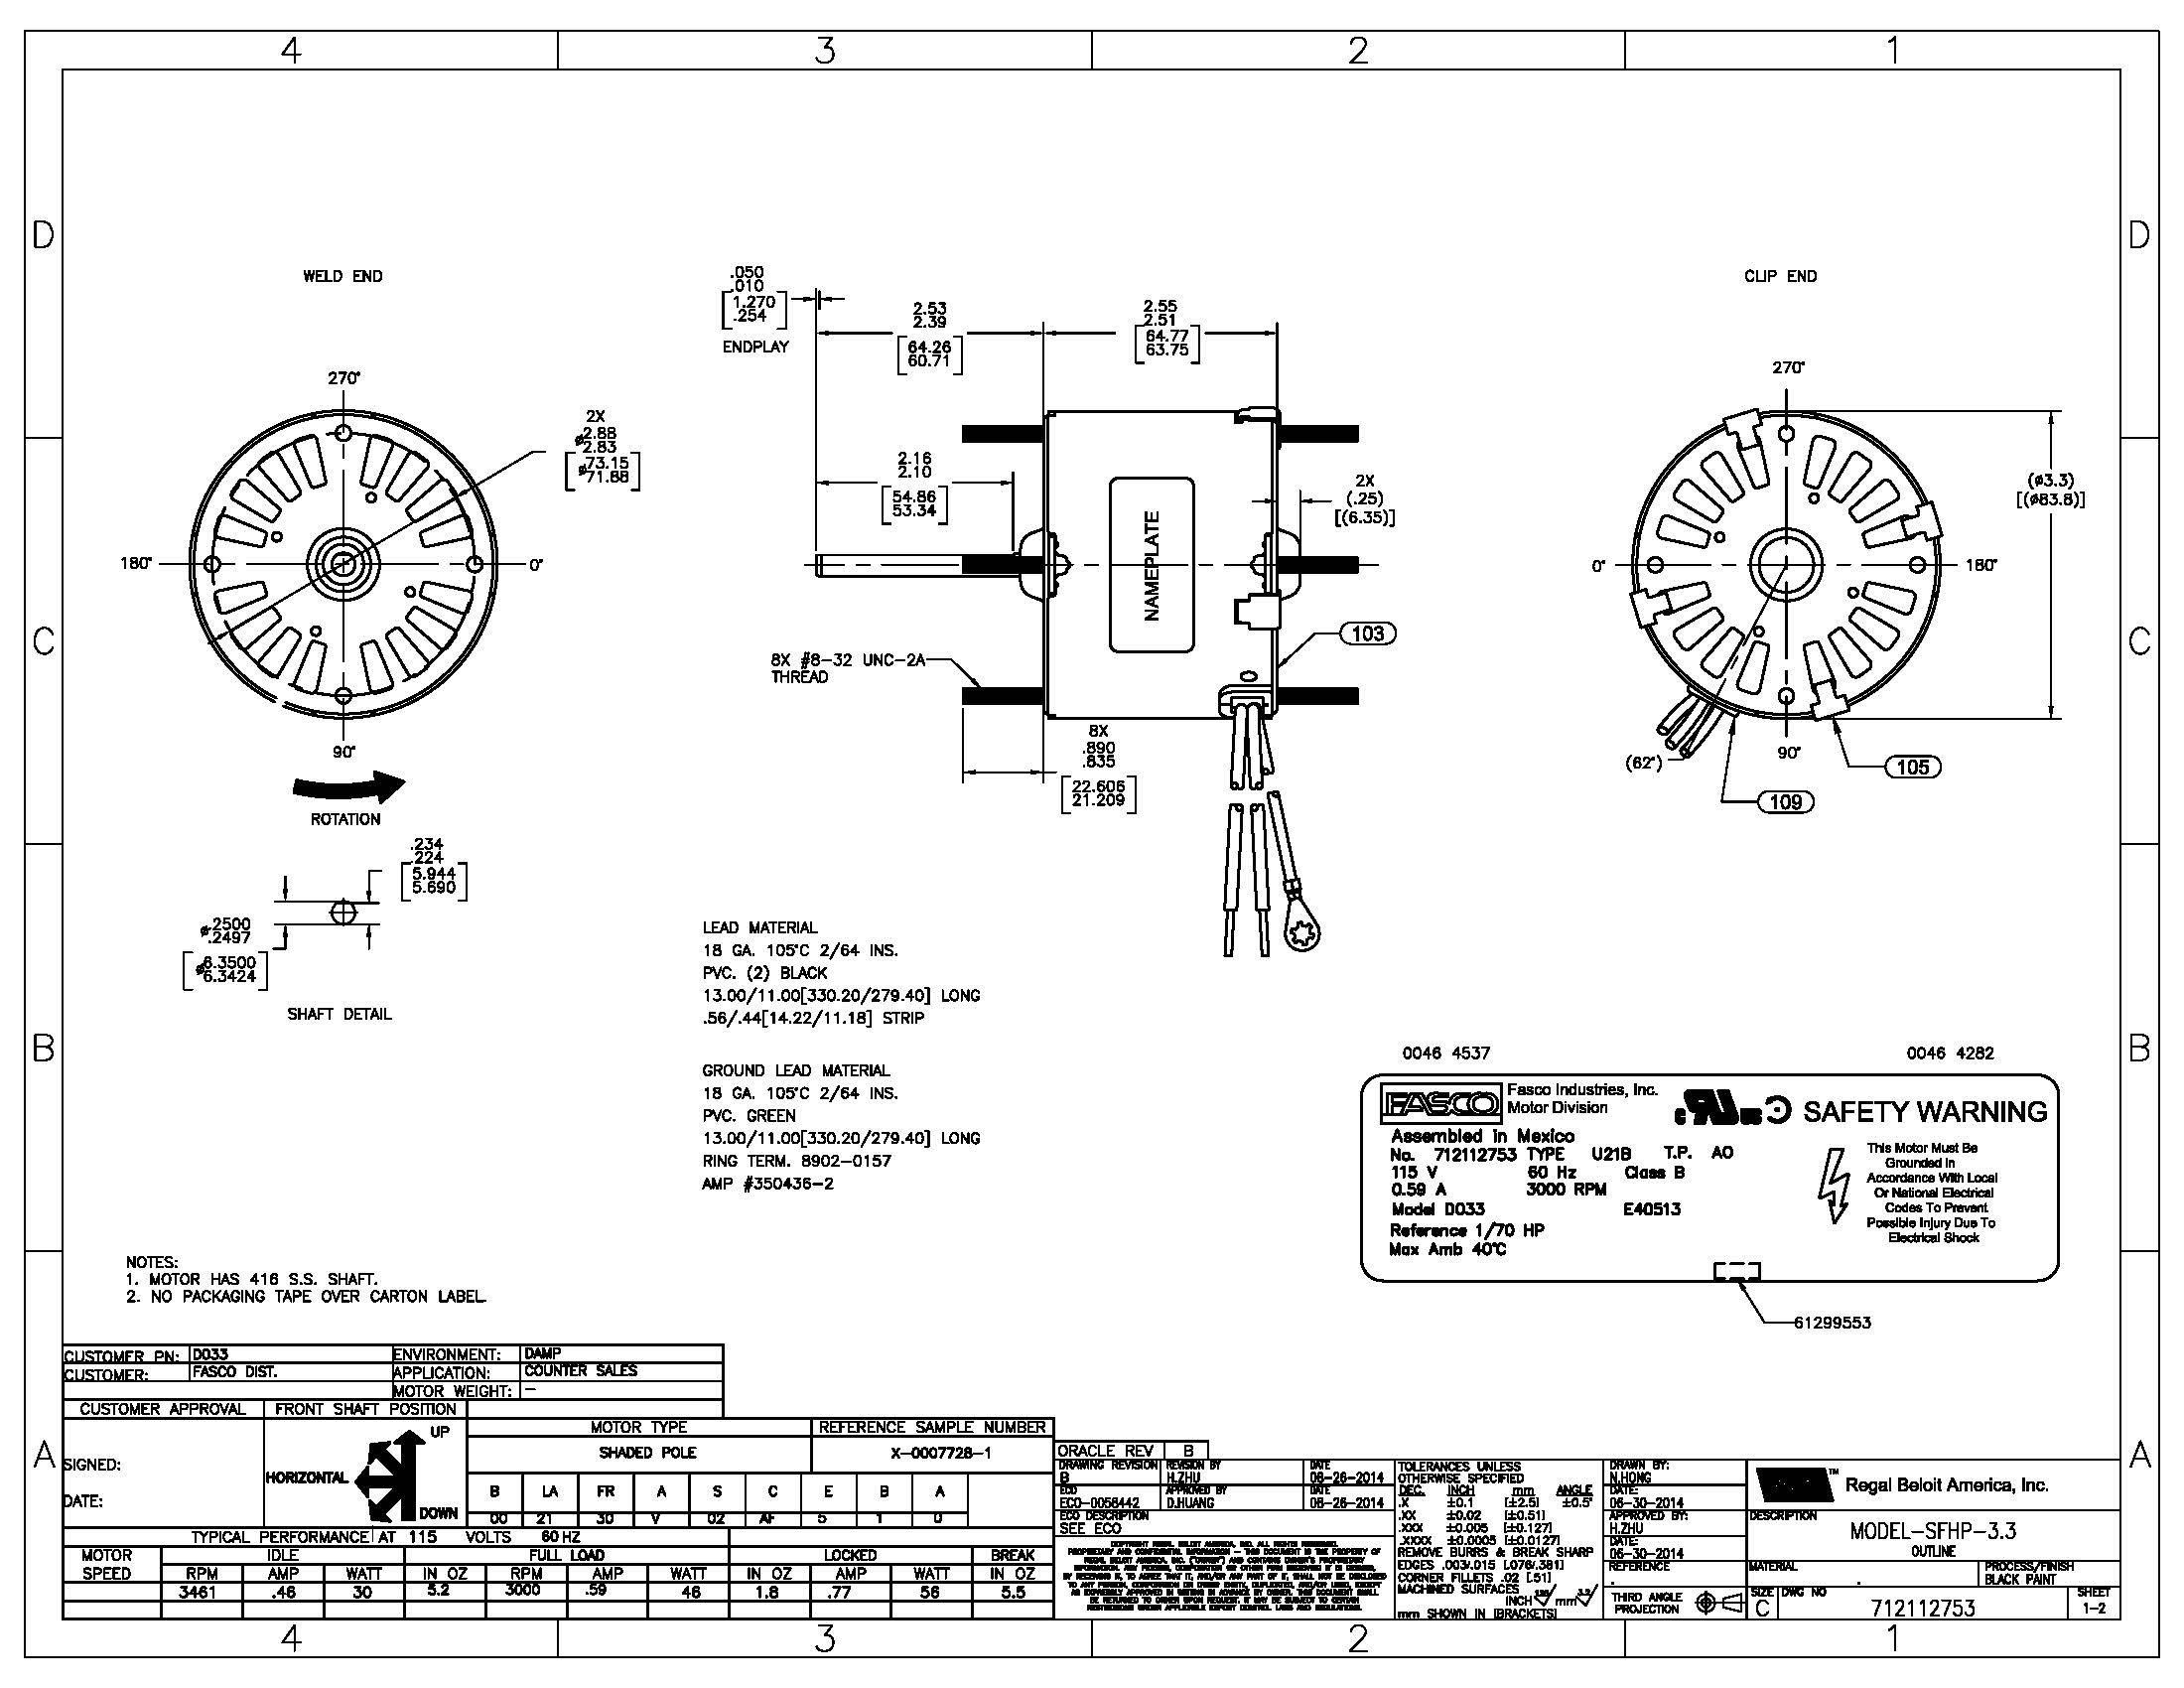 fasco motors wiring diagram Collection-Wiring Diagram Fasco Motors Best Wiring Diagram for Fasco Blower Motor Fresh Wiring Diagram Shaded 18-i